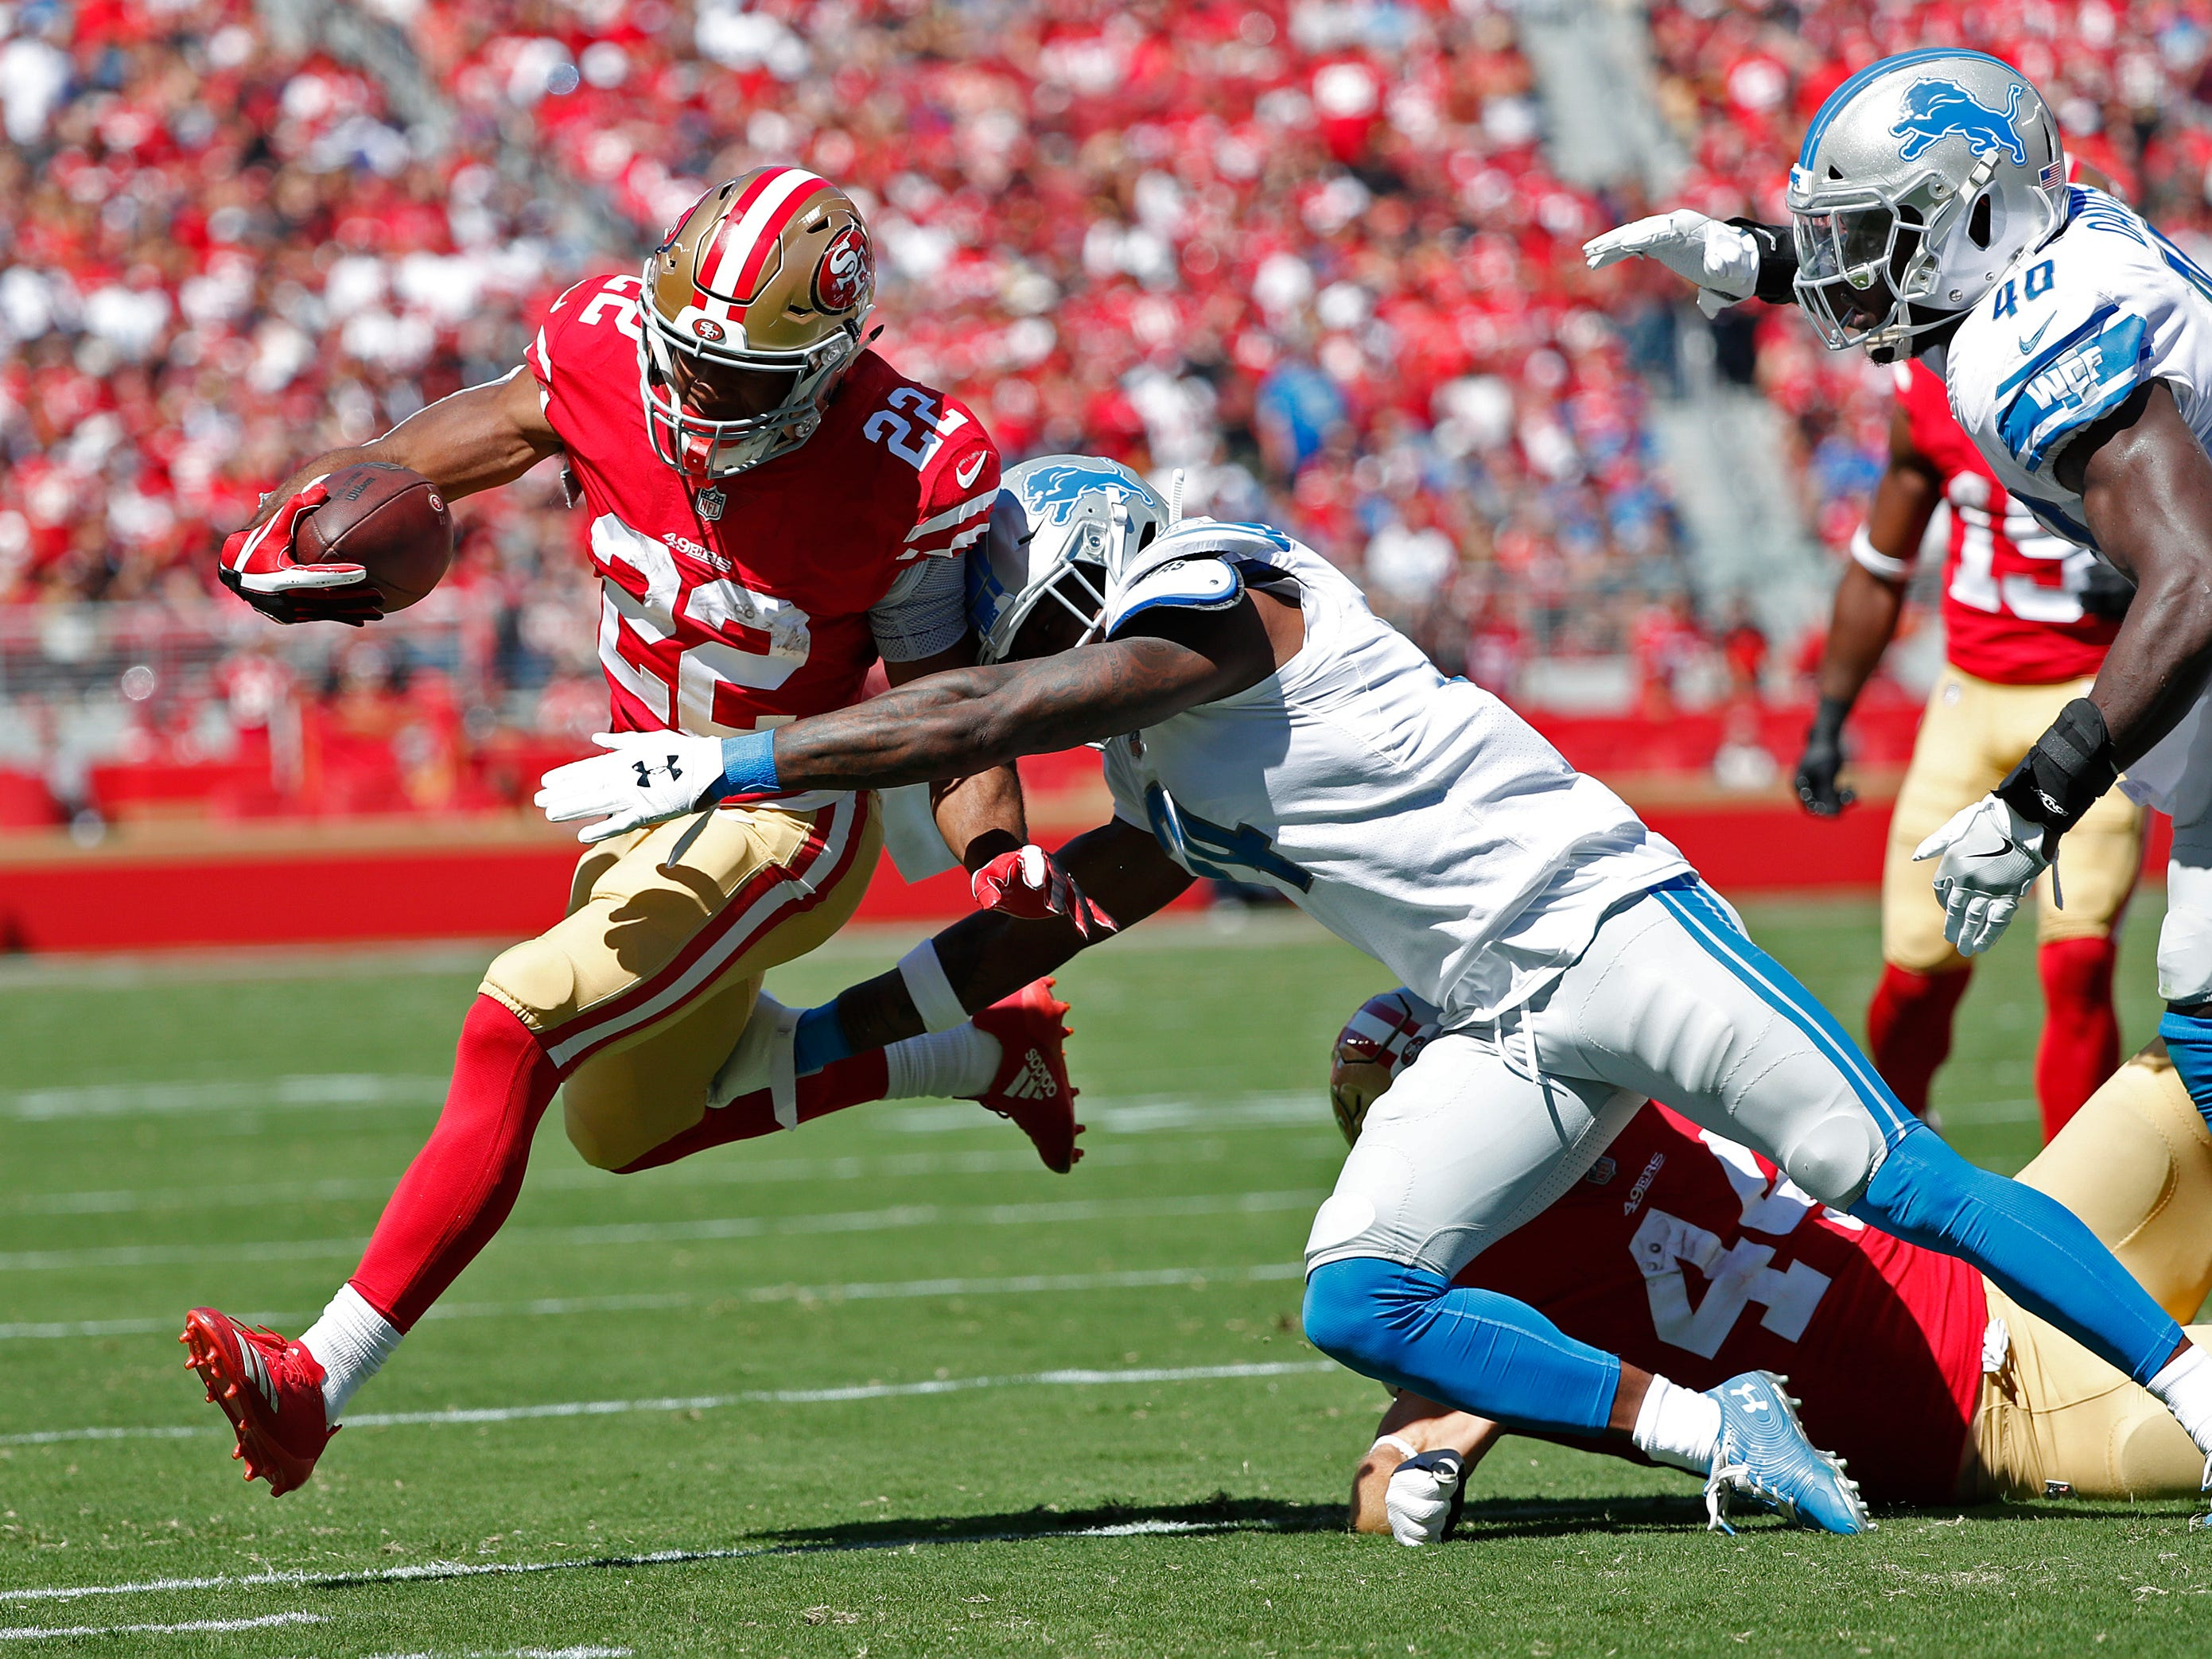 San Francisco 49ers running back Matt Breida (22) runs with the ball as Detroit Lions defensive back Nevin Lawson tries to stop him during the first half.